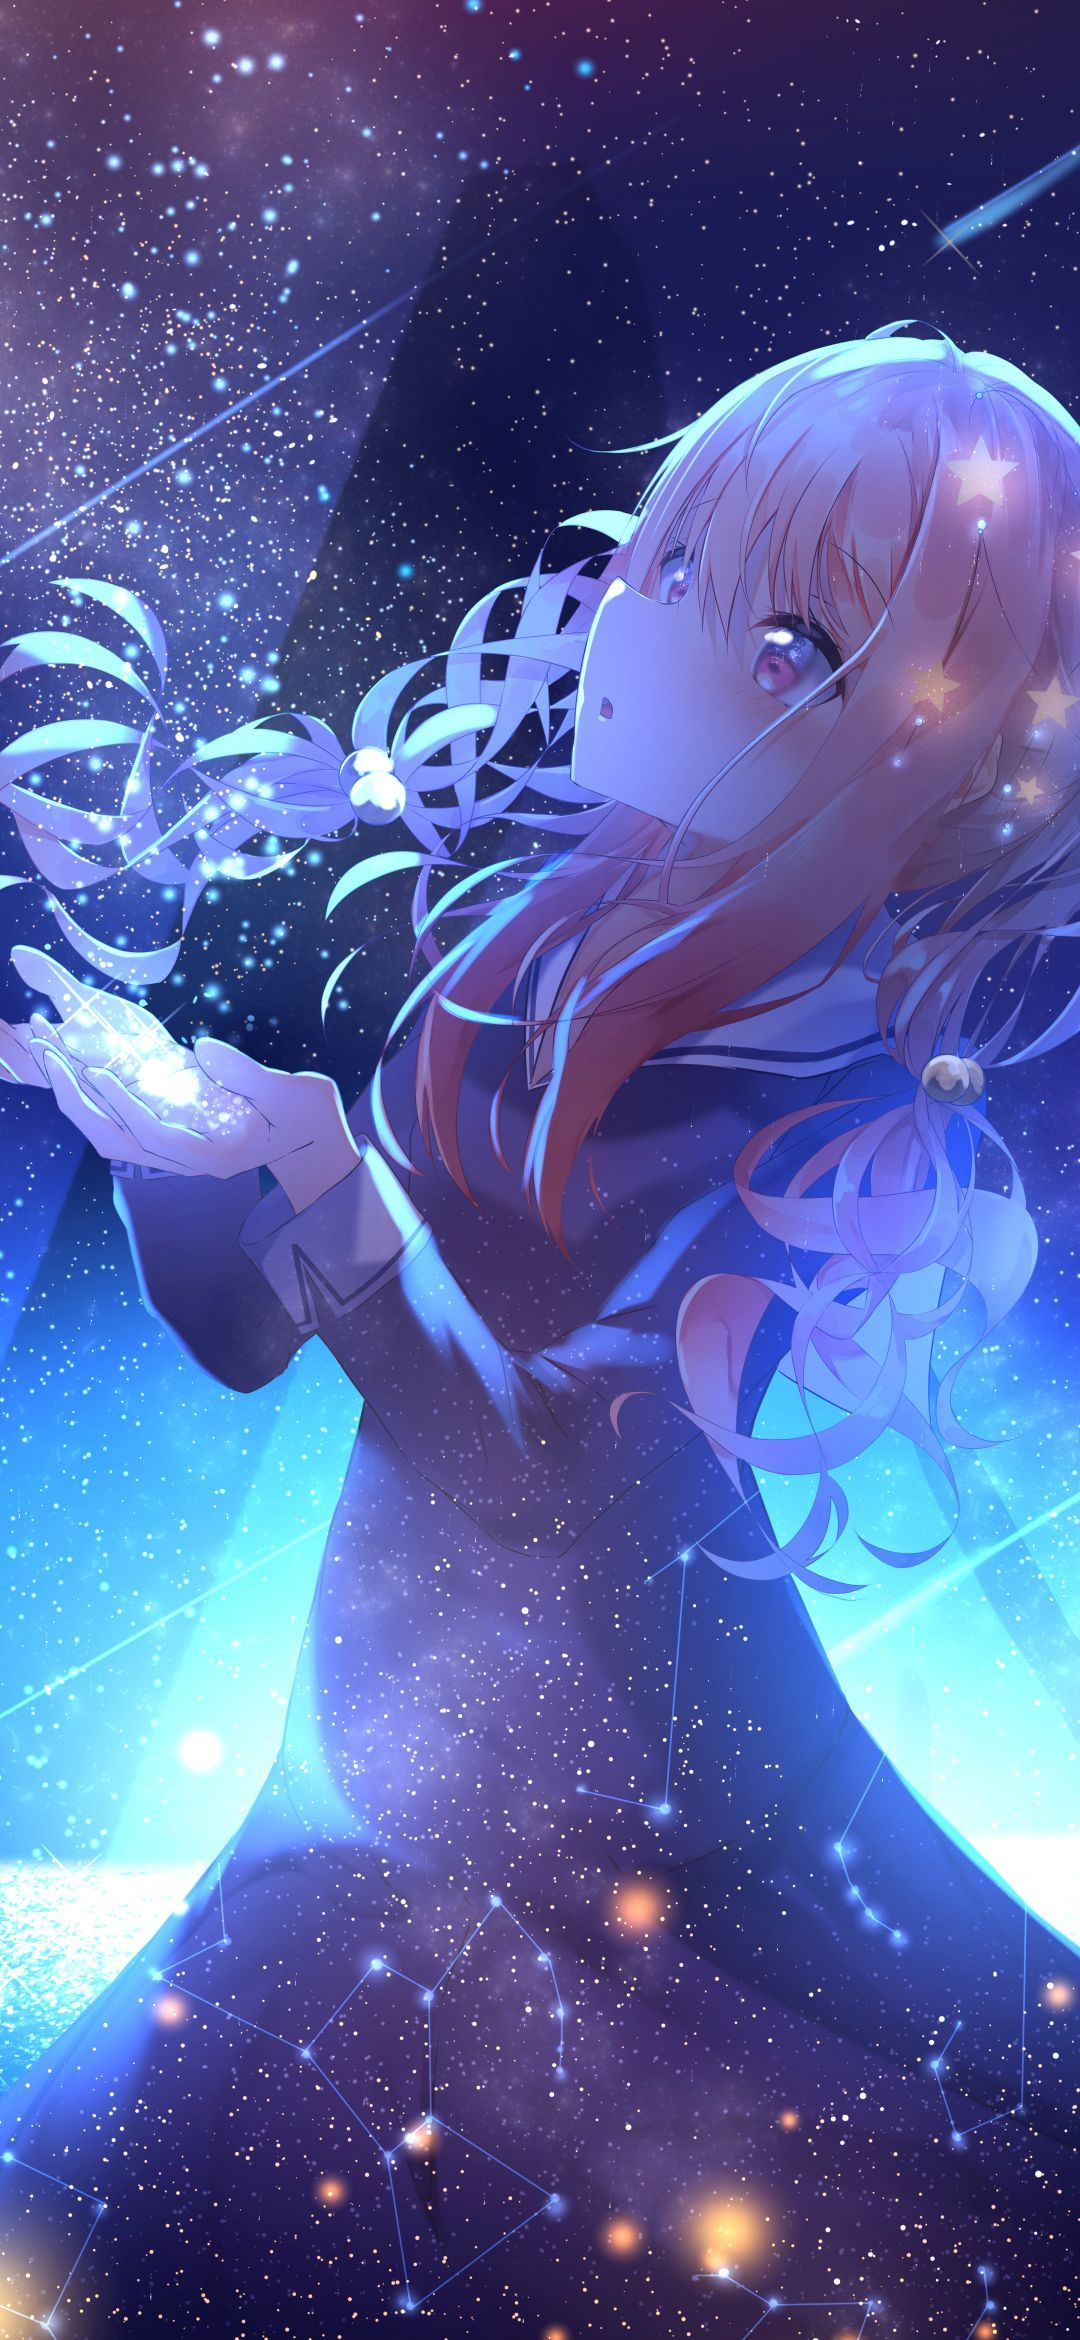 Anime Girl 1080x2340 Wallpapers - Wallpaper Cave